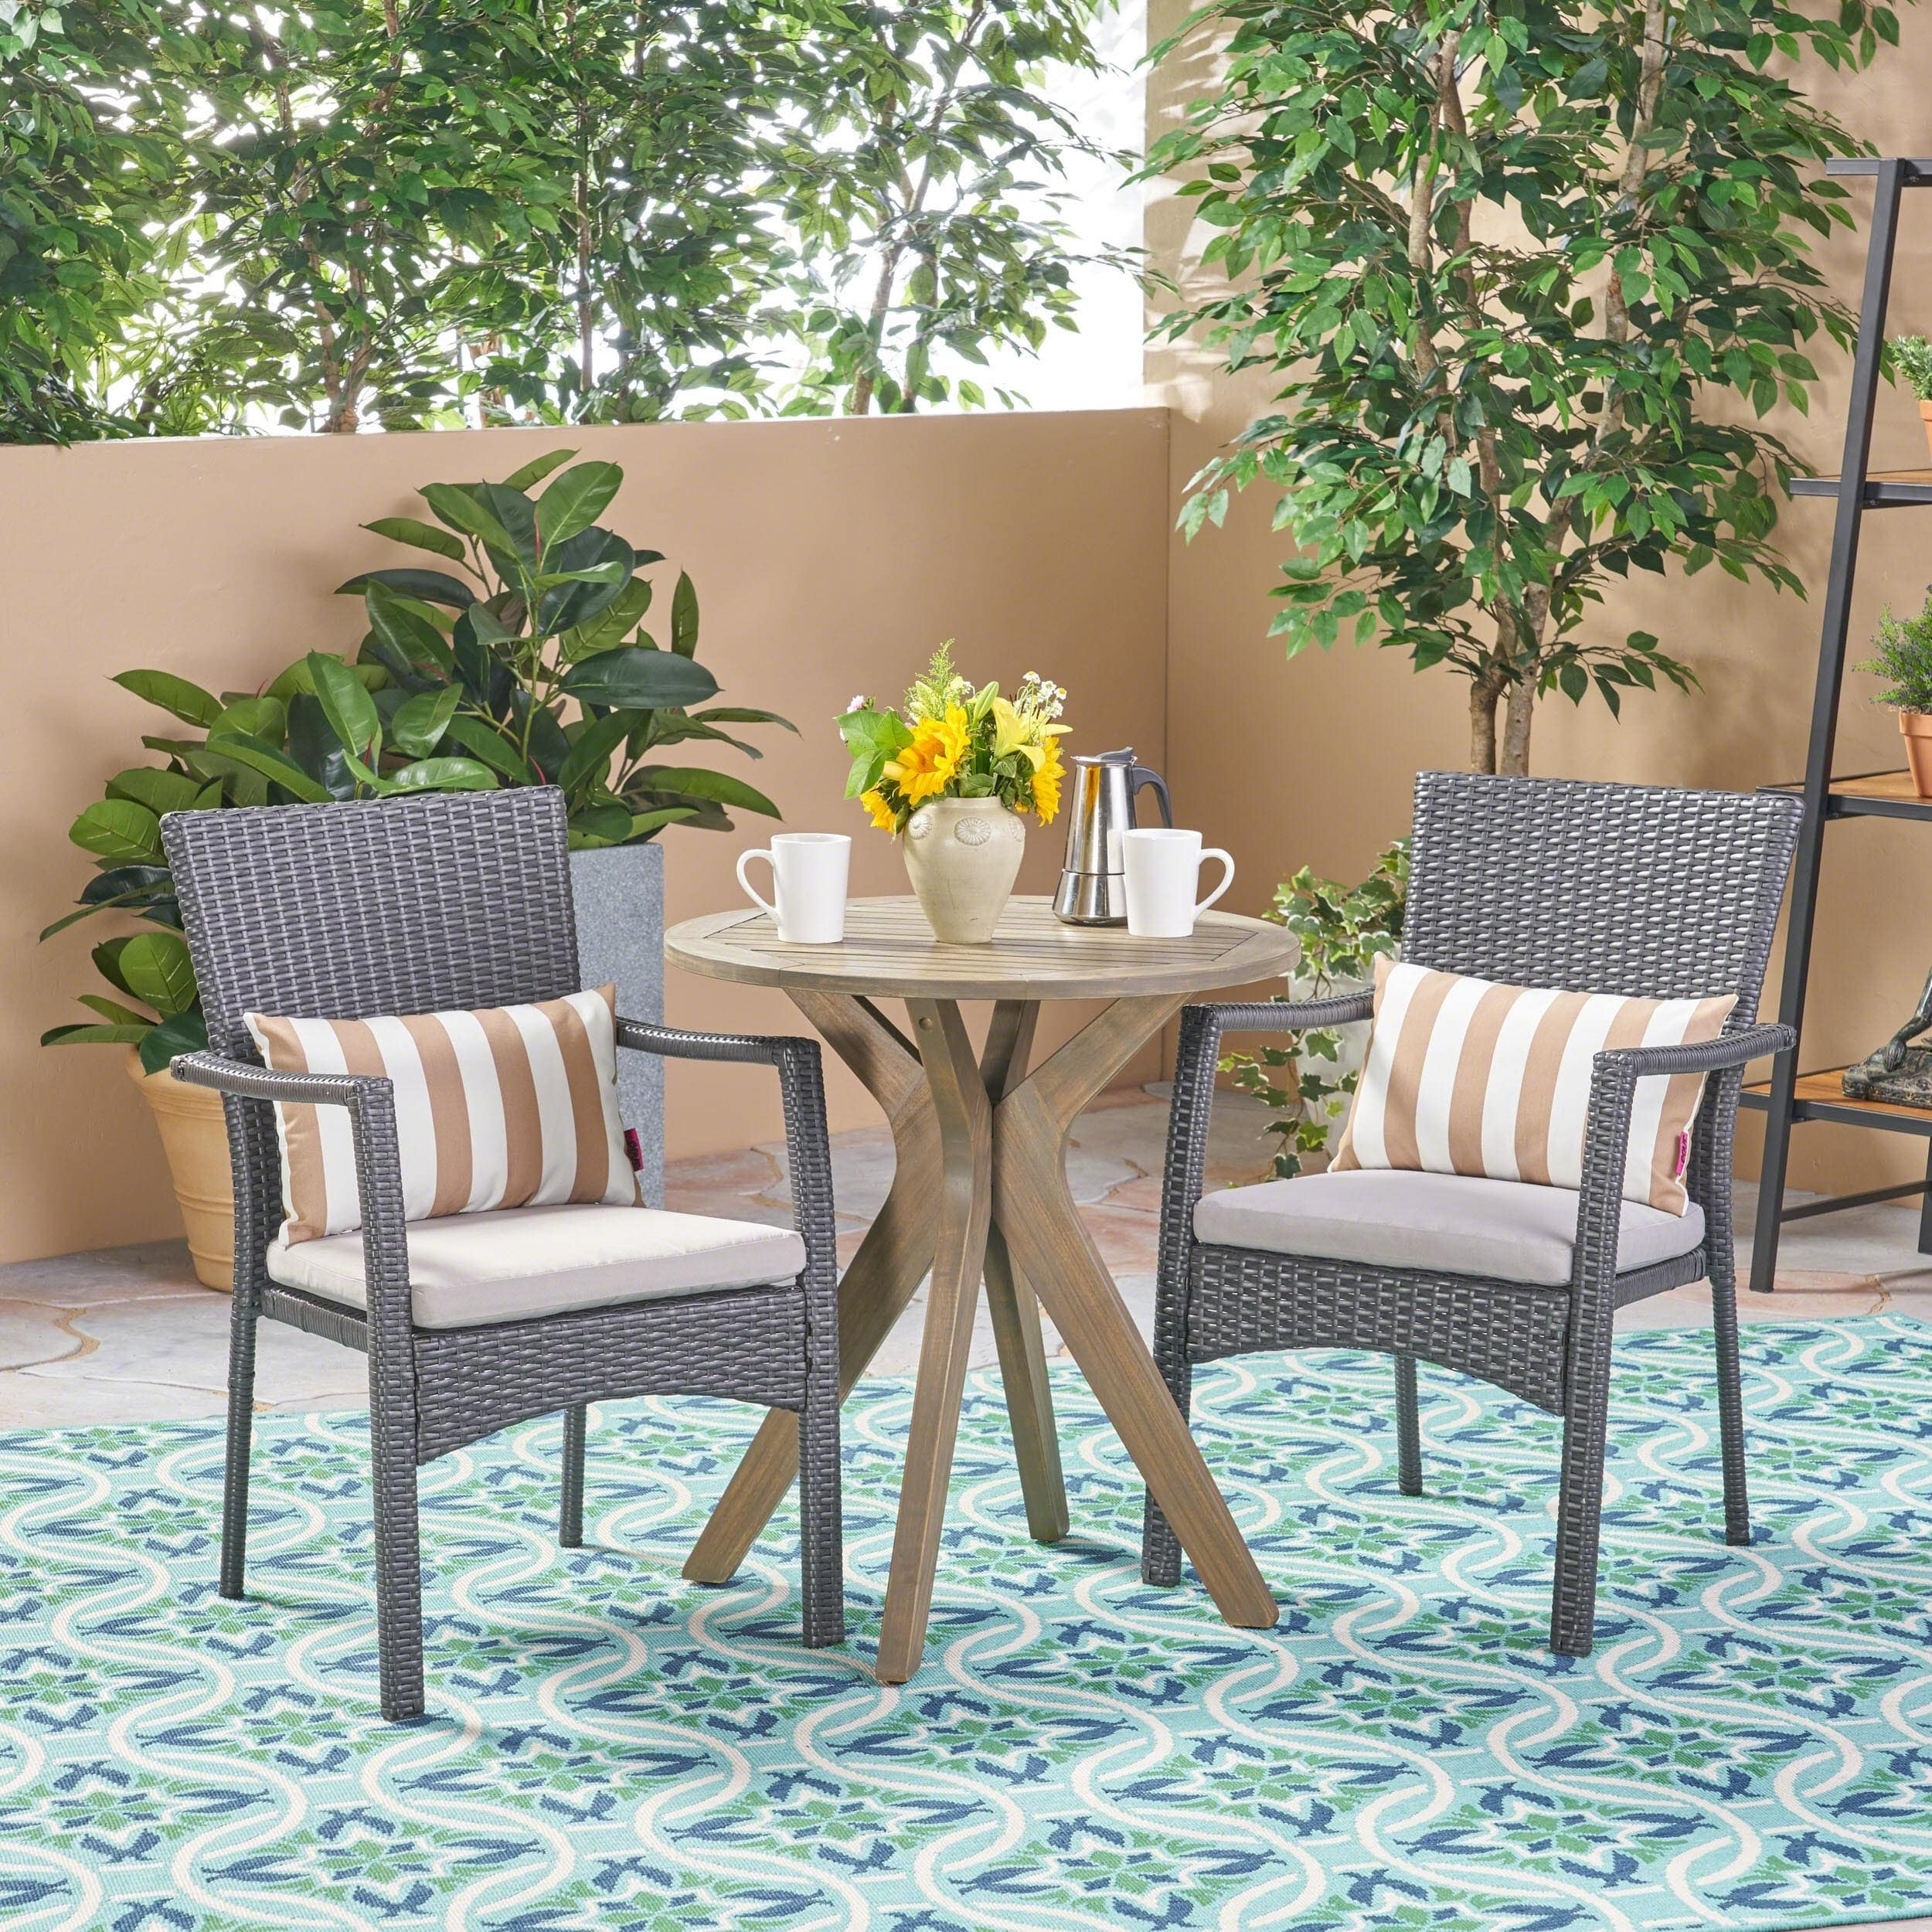 Christopher Knight Home Kent Outdoor 3 Piece Acacia Wood and Wicker Bistro Set by